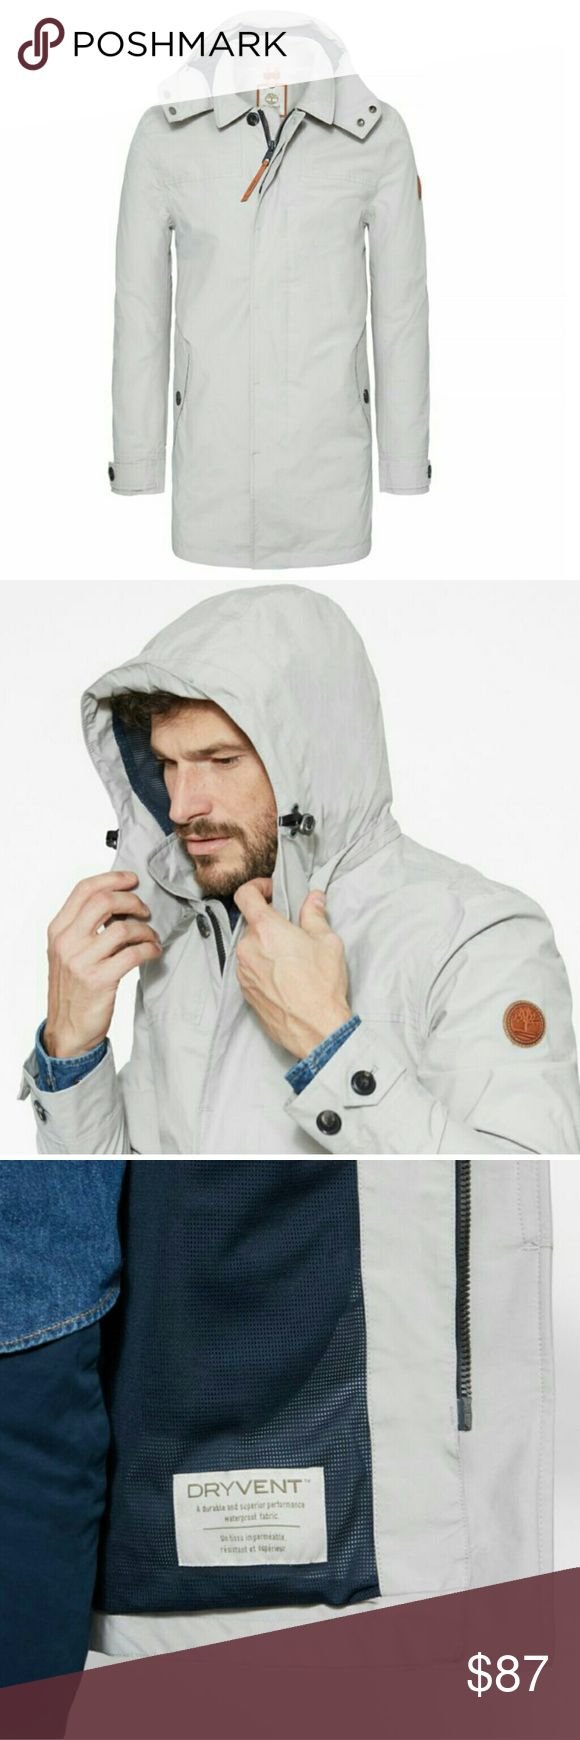 Timberland waterproof - mount Reagan mens mac 100% AUTHENTIC TIMBERLAND WATERPROOF JACKET  Description  Men's mac is made with exclusive seam-sealed DryVent technology that keeps the fabric breathable on the inside and waterproof on the outside. This classic design is a true wet weather essential for the outdoor wardrobe Timberland Jackets & Coats Lightweight & Shirt Jackets